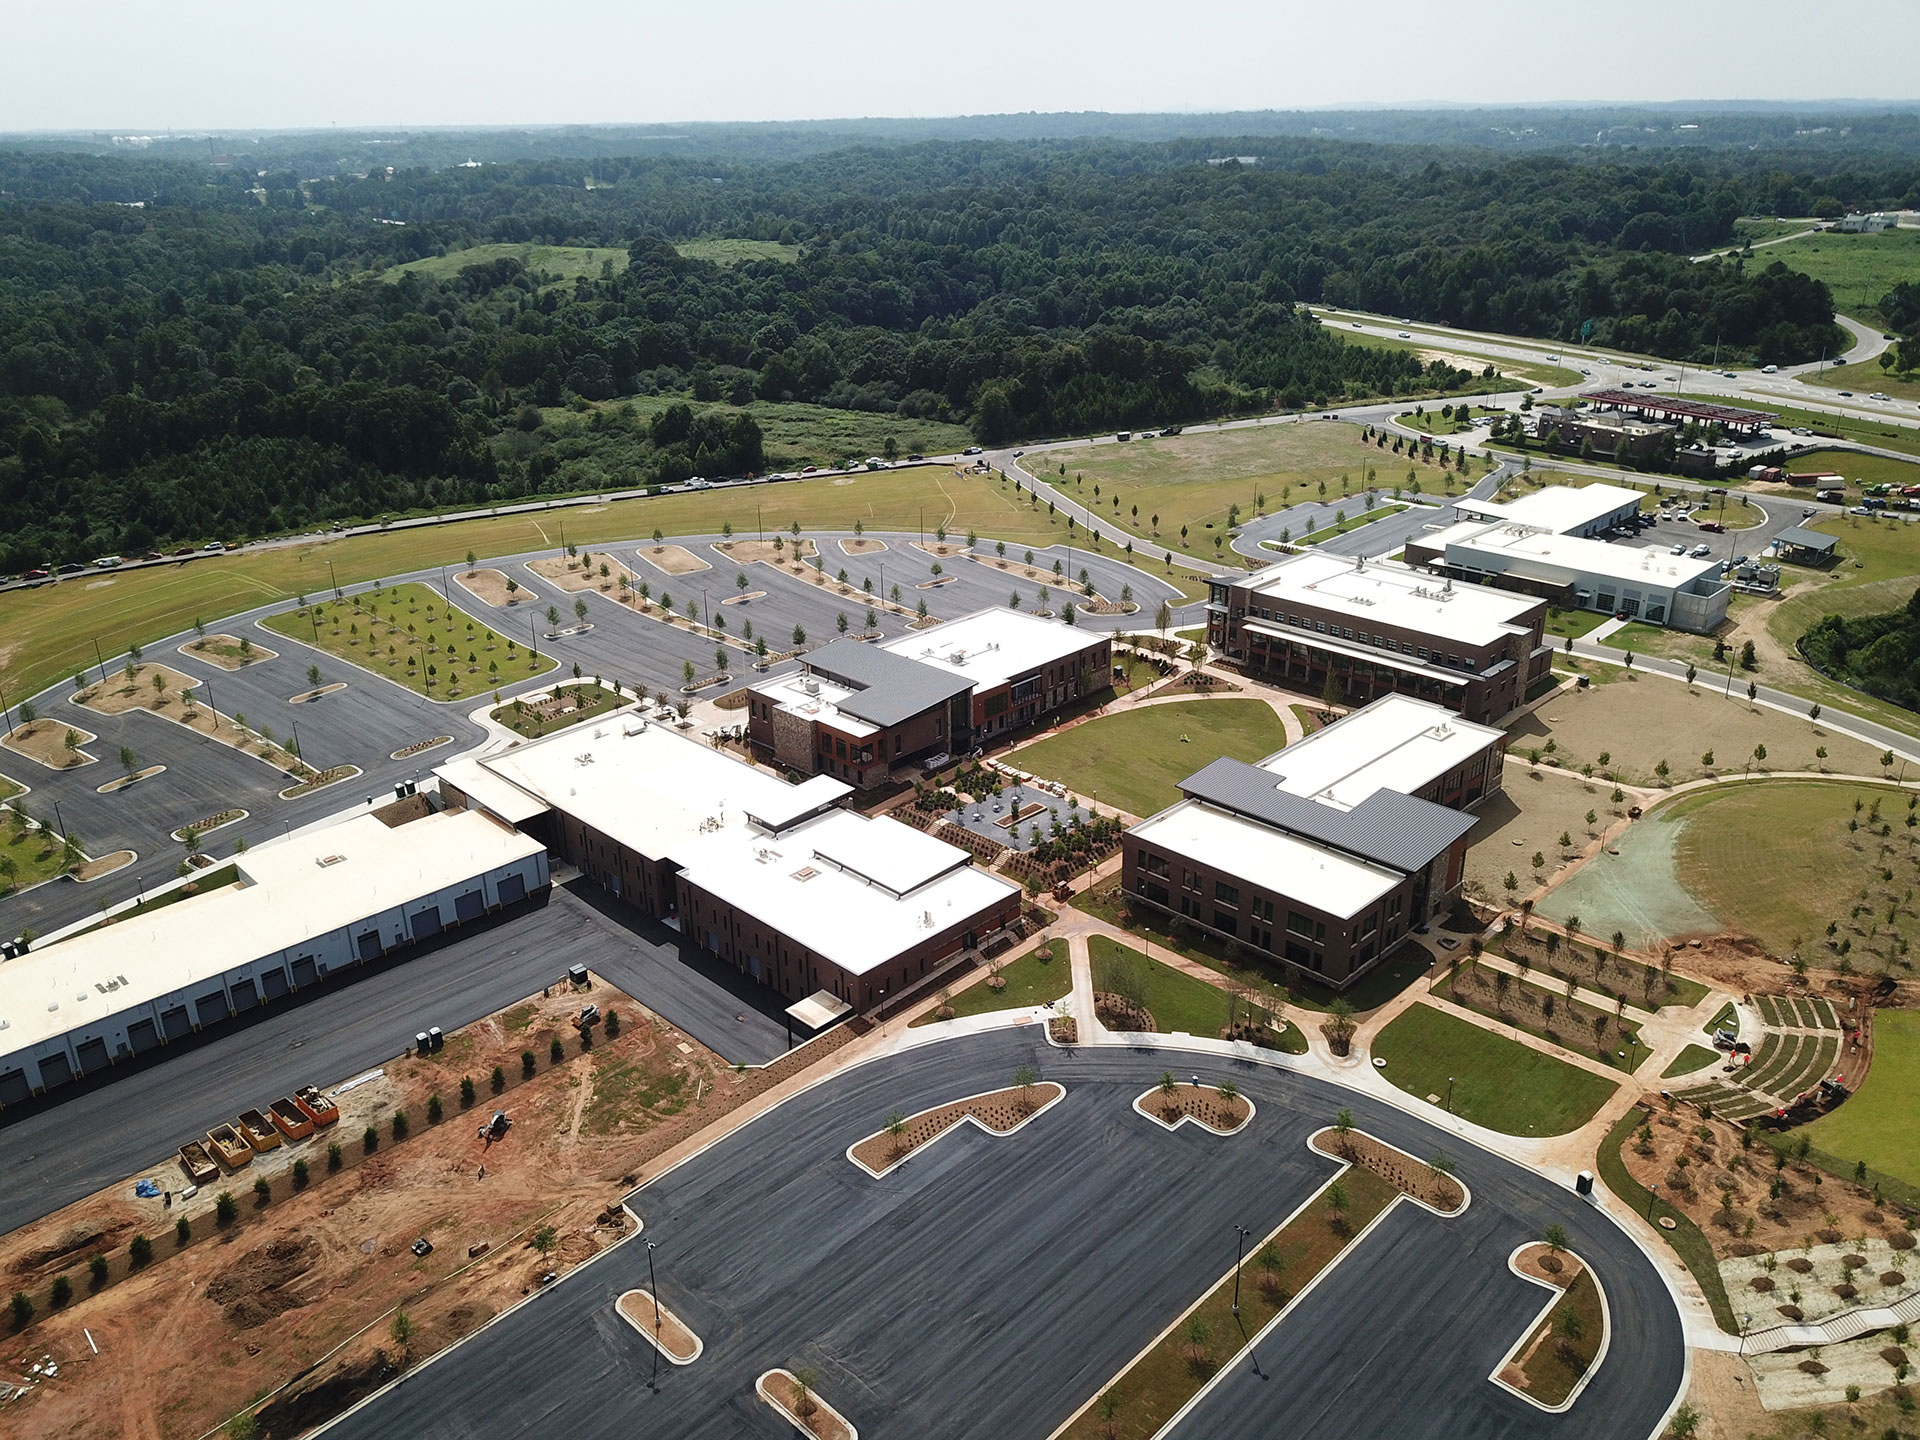 Lanier Technical College North Hall Campus A Prototype For The Campuses Of The Future A C Development Inc